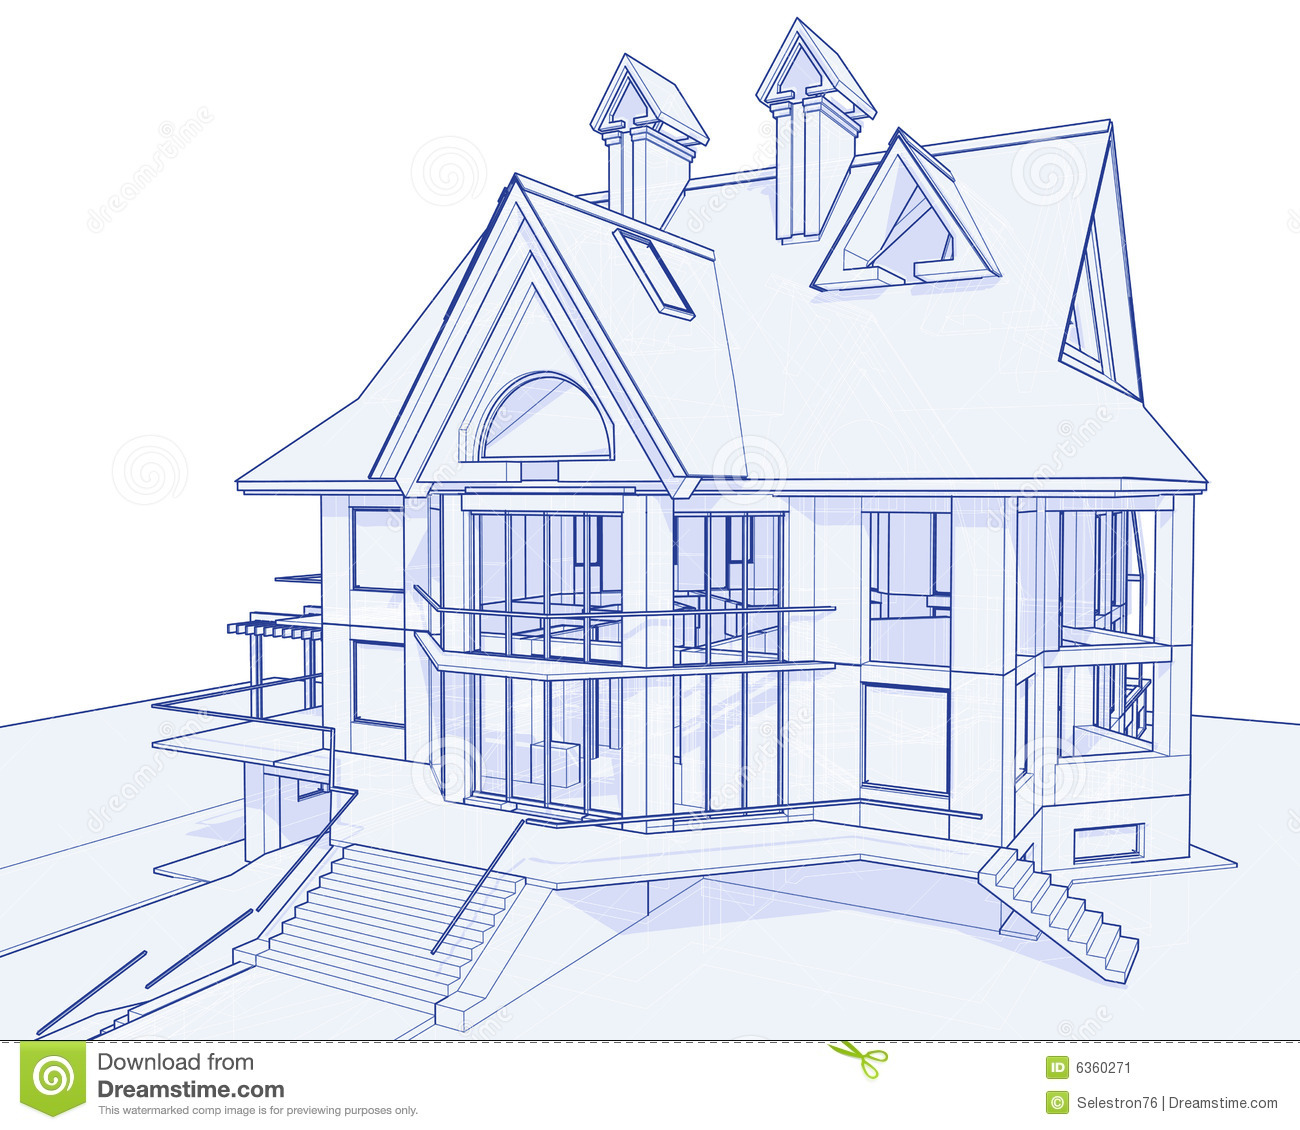 Https Www Dreamstime Com Stock Image Modern House Blueprint Image6360271